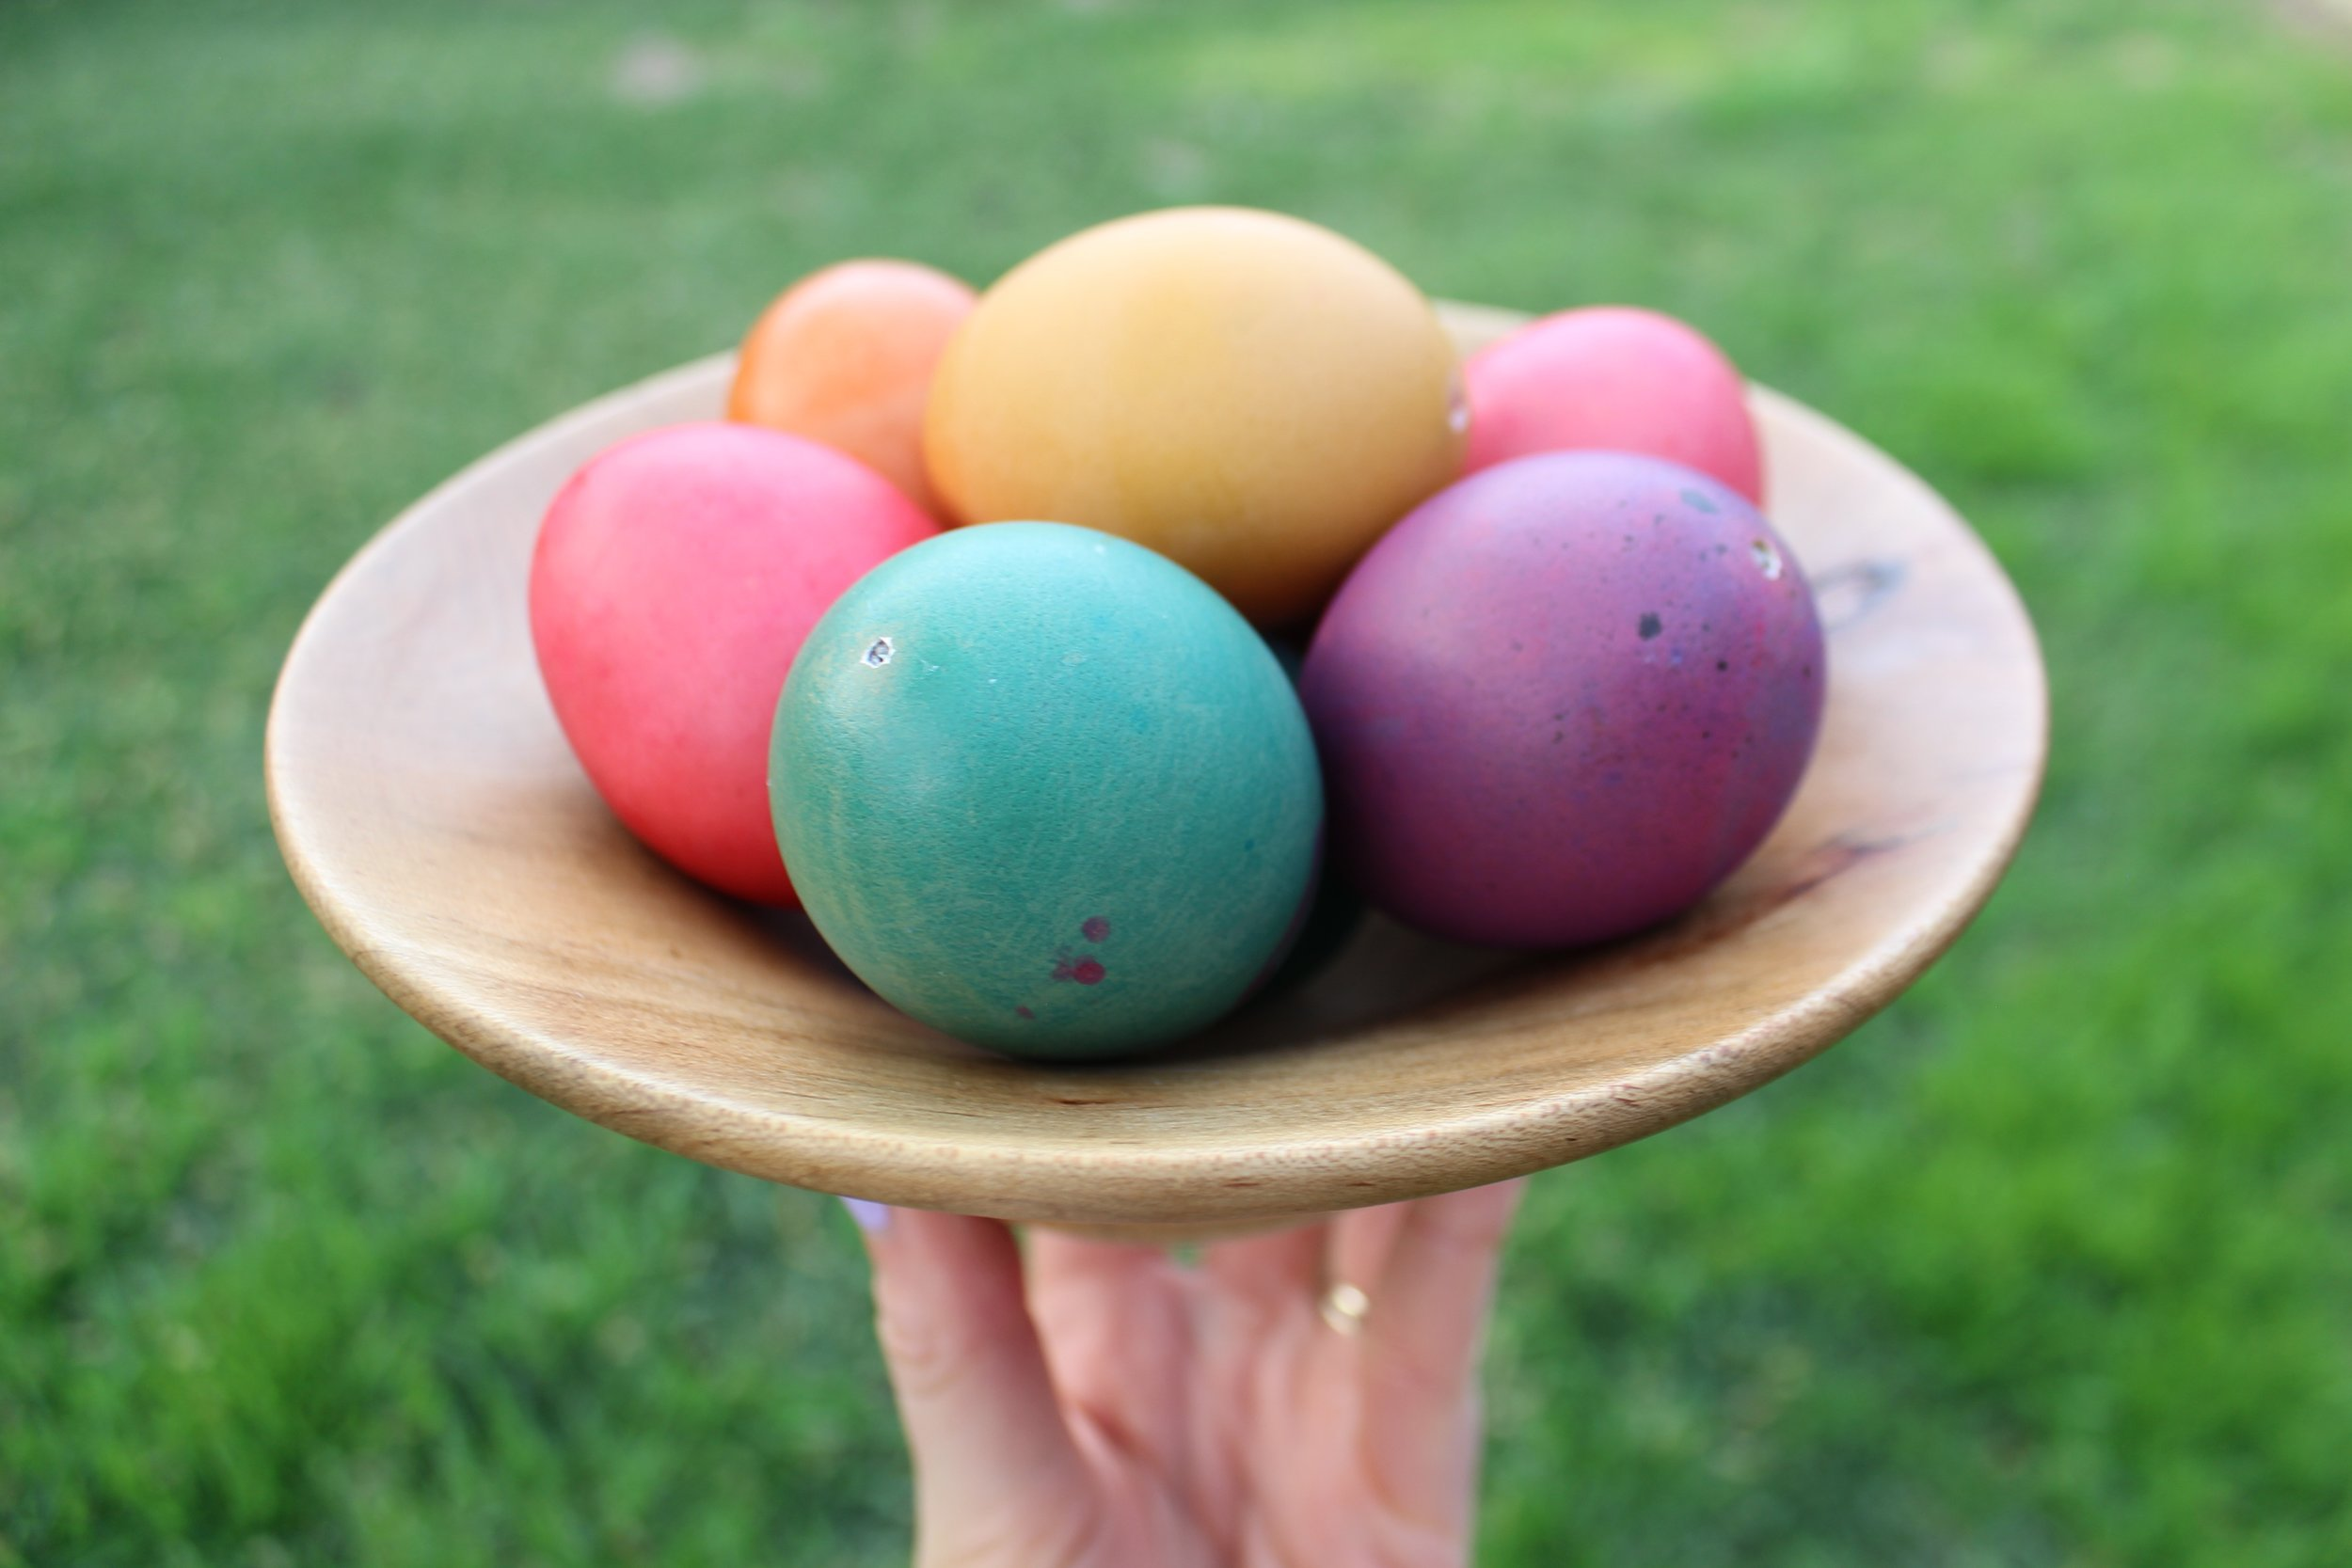 And there you have it— jewel-toned eggs pretty enough to wear!